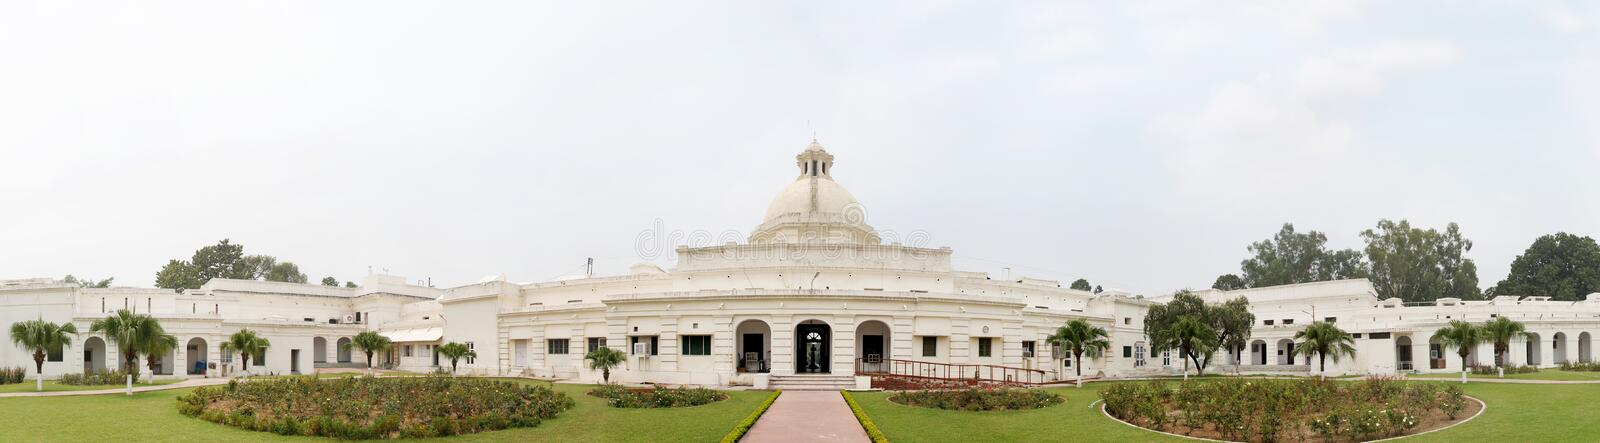 Construction of main building of IIT Roorkee started in 1852. ROORKEE, INDIA - JULY 03: The interior of administrative building of IIT Roorkee photographed on royalty free stock photography